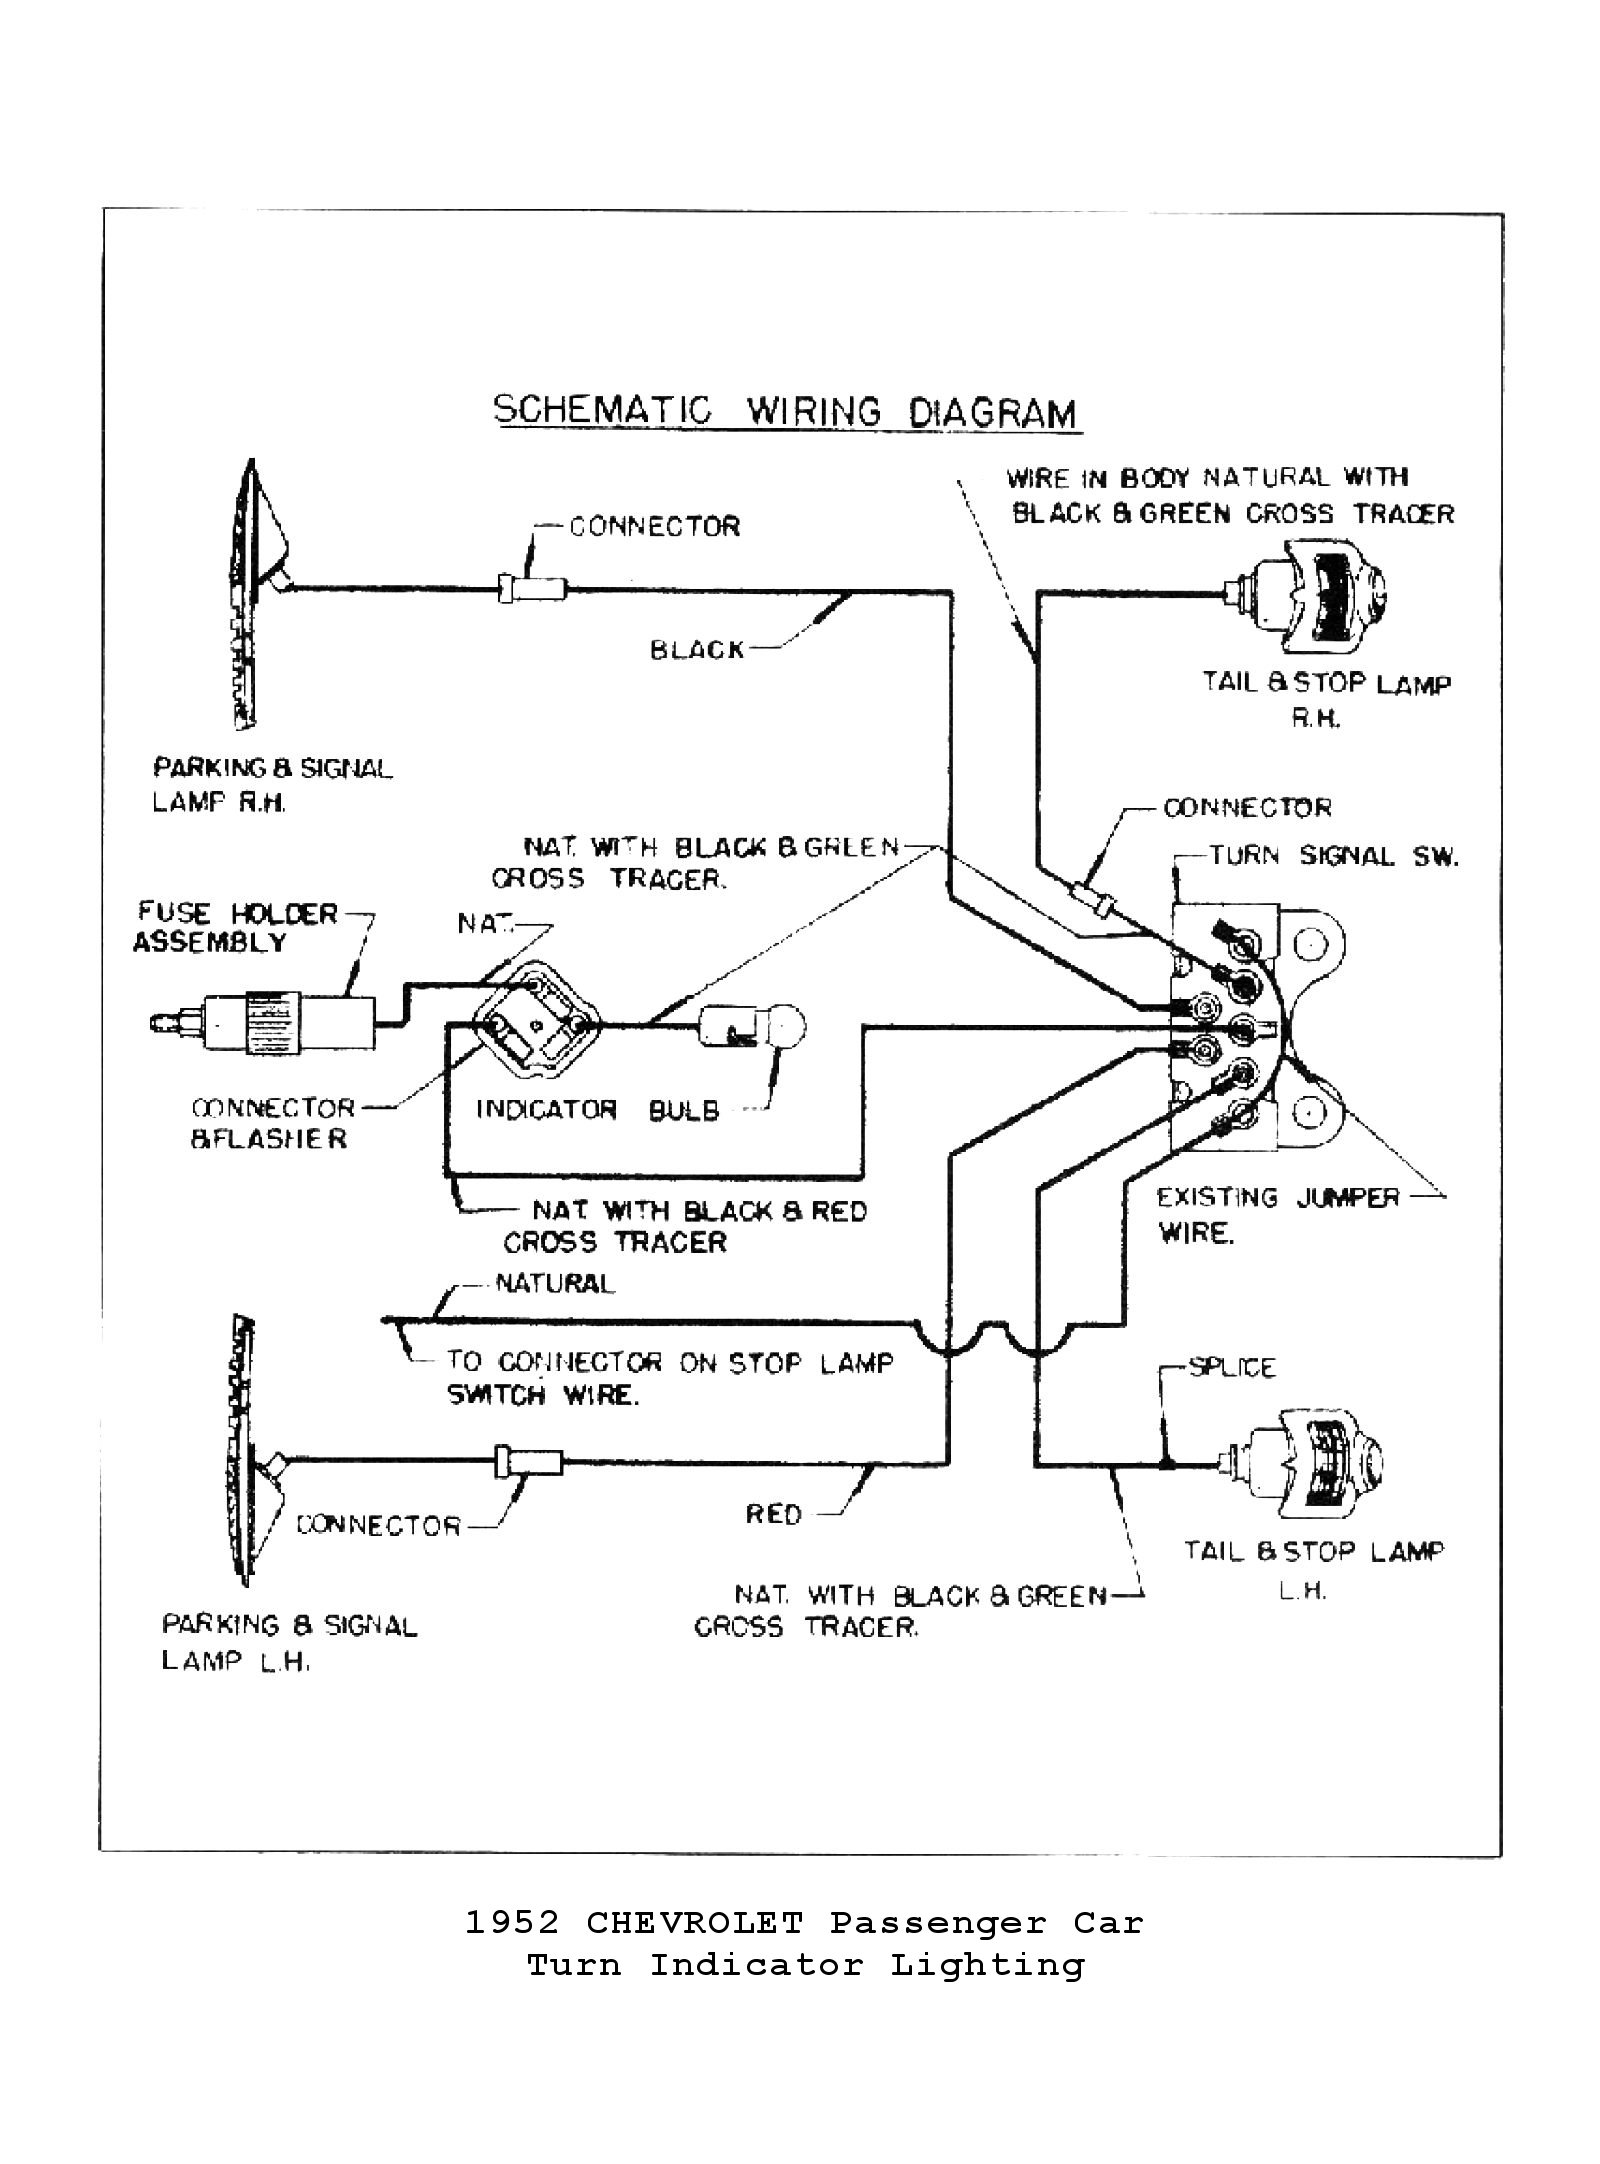 1966 corvair turn signal wiring diagram basic guide wiring diagram u2022 rh desirehub co